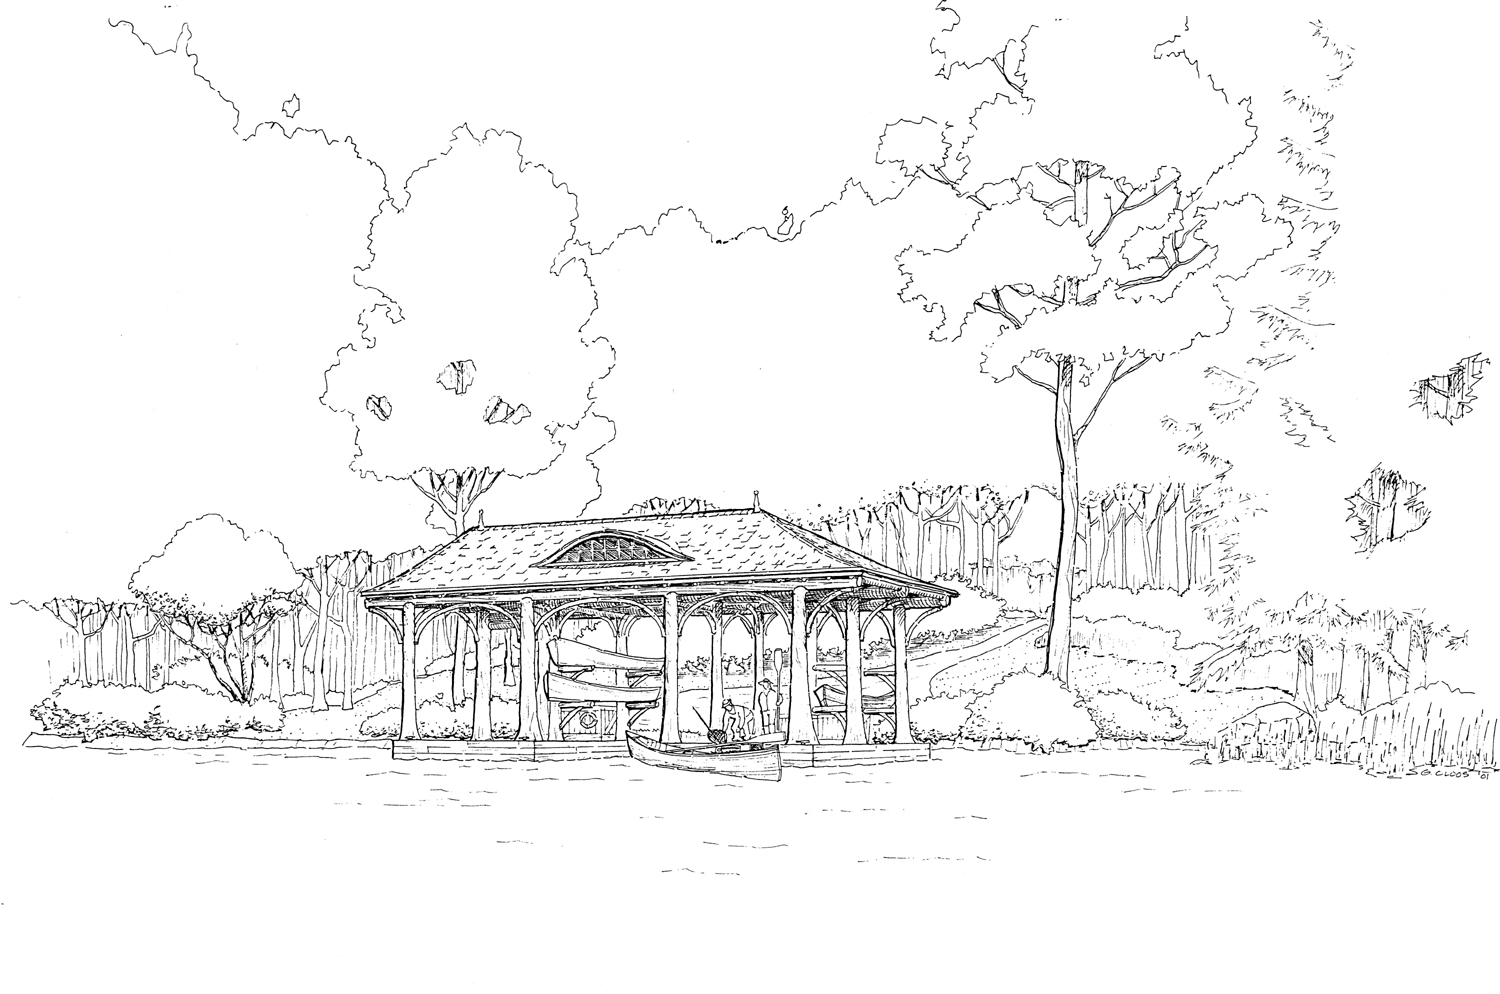 Boathouse Sketch